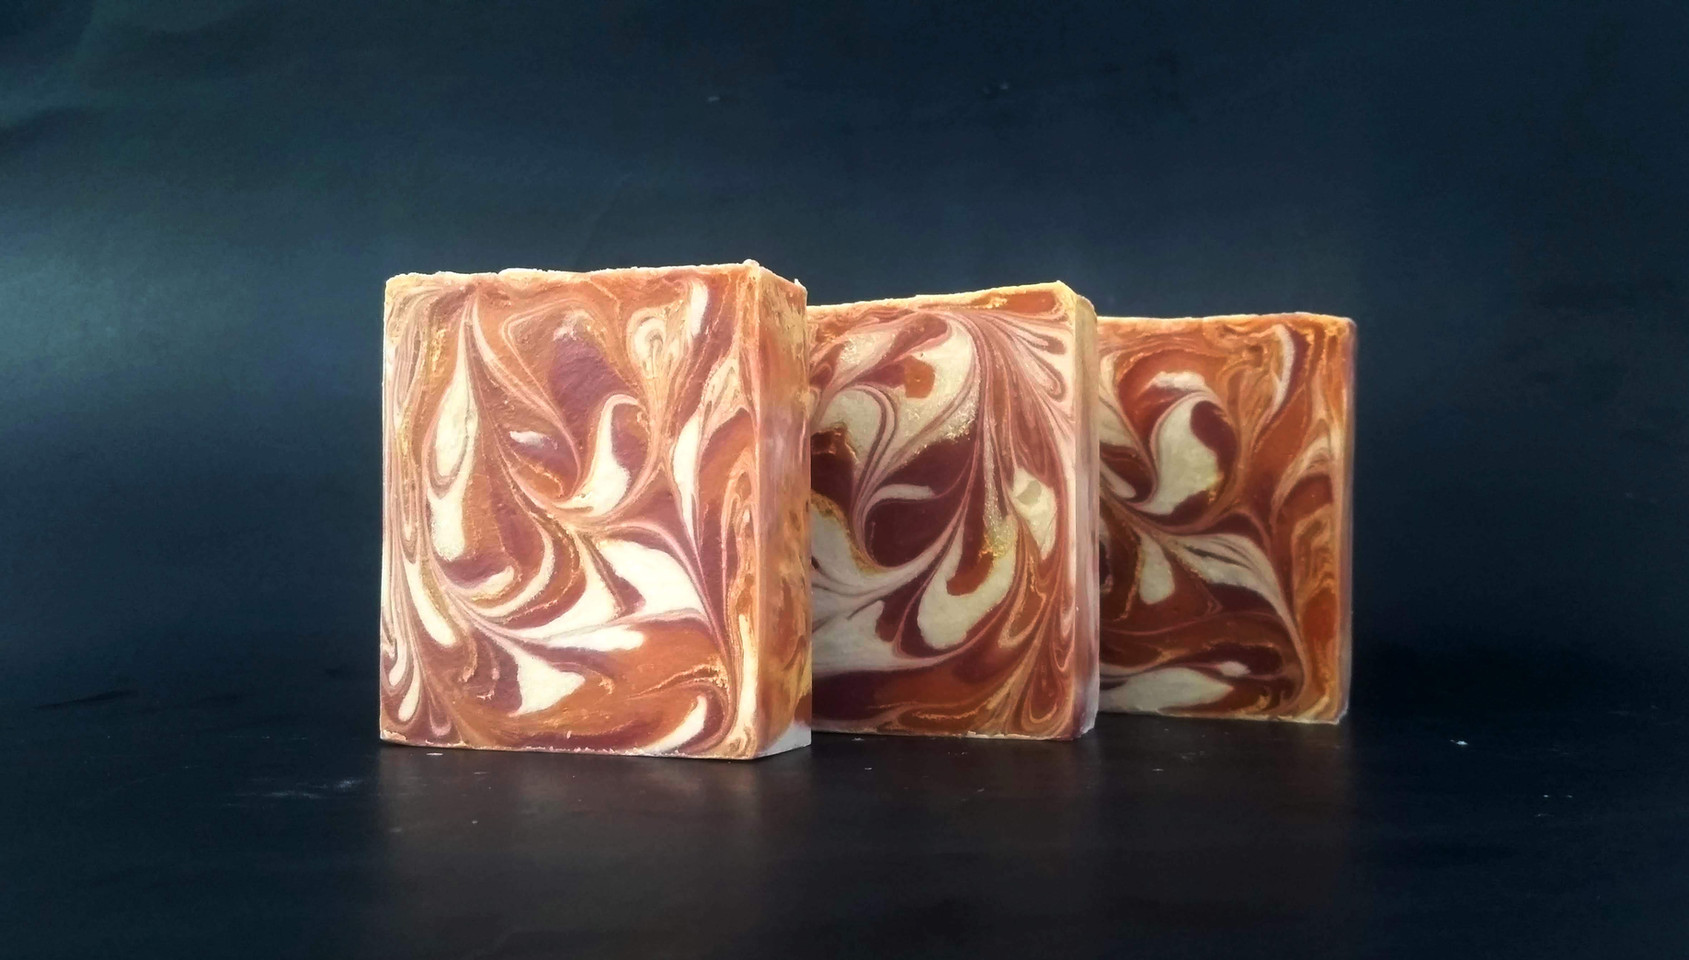 The Ultimate Guide to Hot Process Soap- Fluid Hot Process Soap